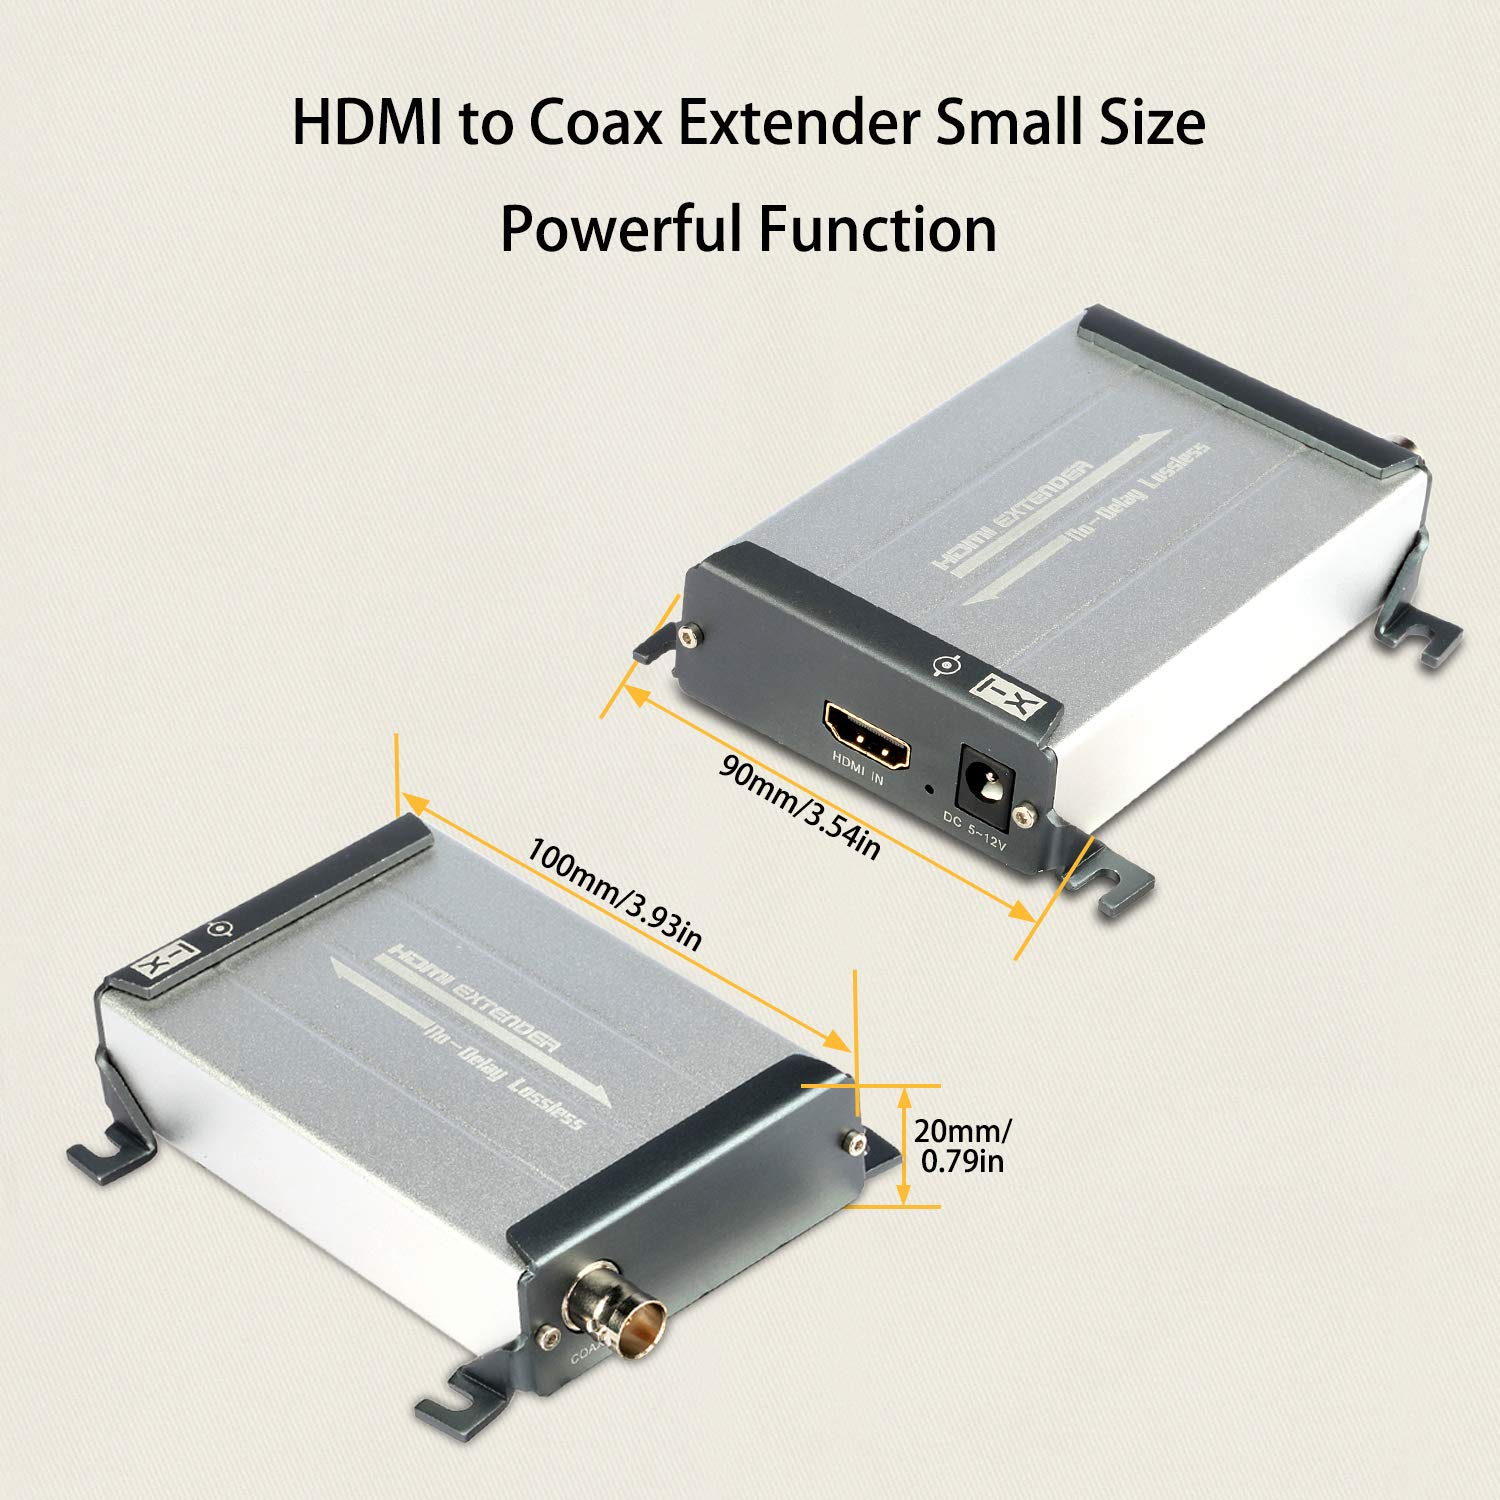 HDMI Over Coax Extender,Ansten HDMI Transmitter and Receiver Support 1080P Full HD HDMI Signal Lossless No Delay, 200m-300m/656FT-984FT HDMI Extender Via Coaxial Cable with BNC Port and F Connector by ANSTEN (Image #6)